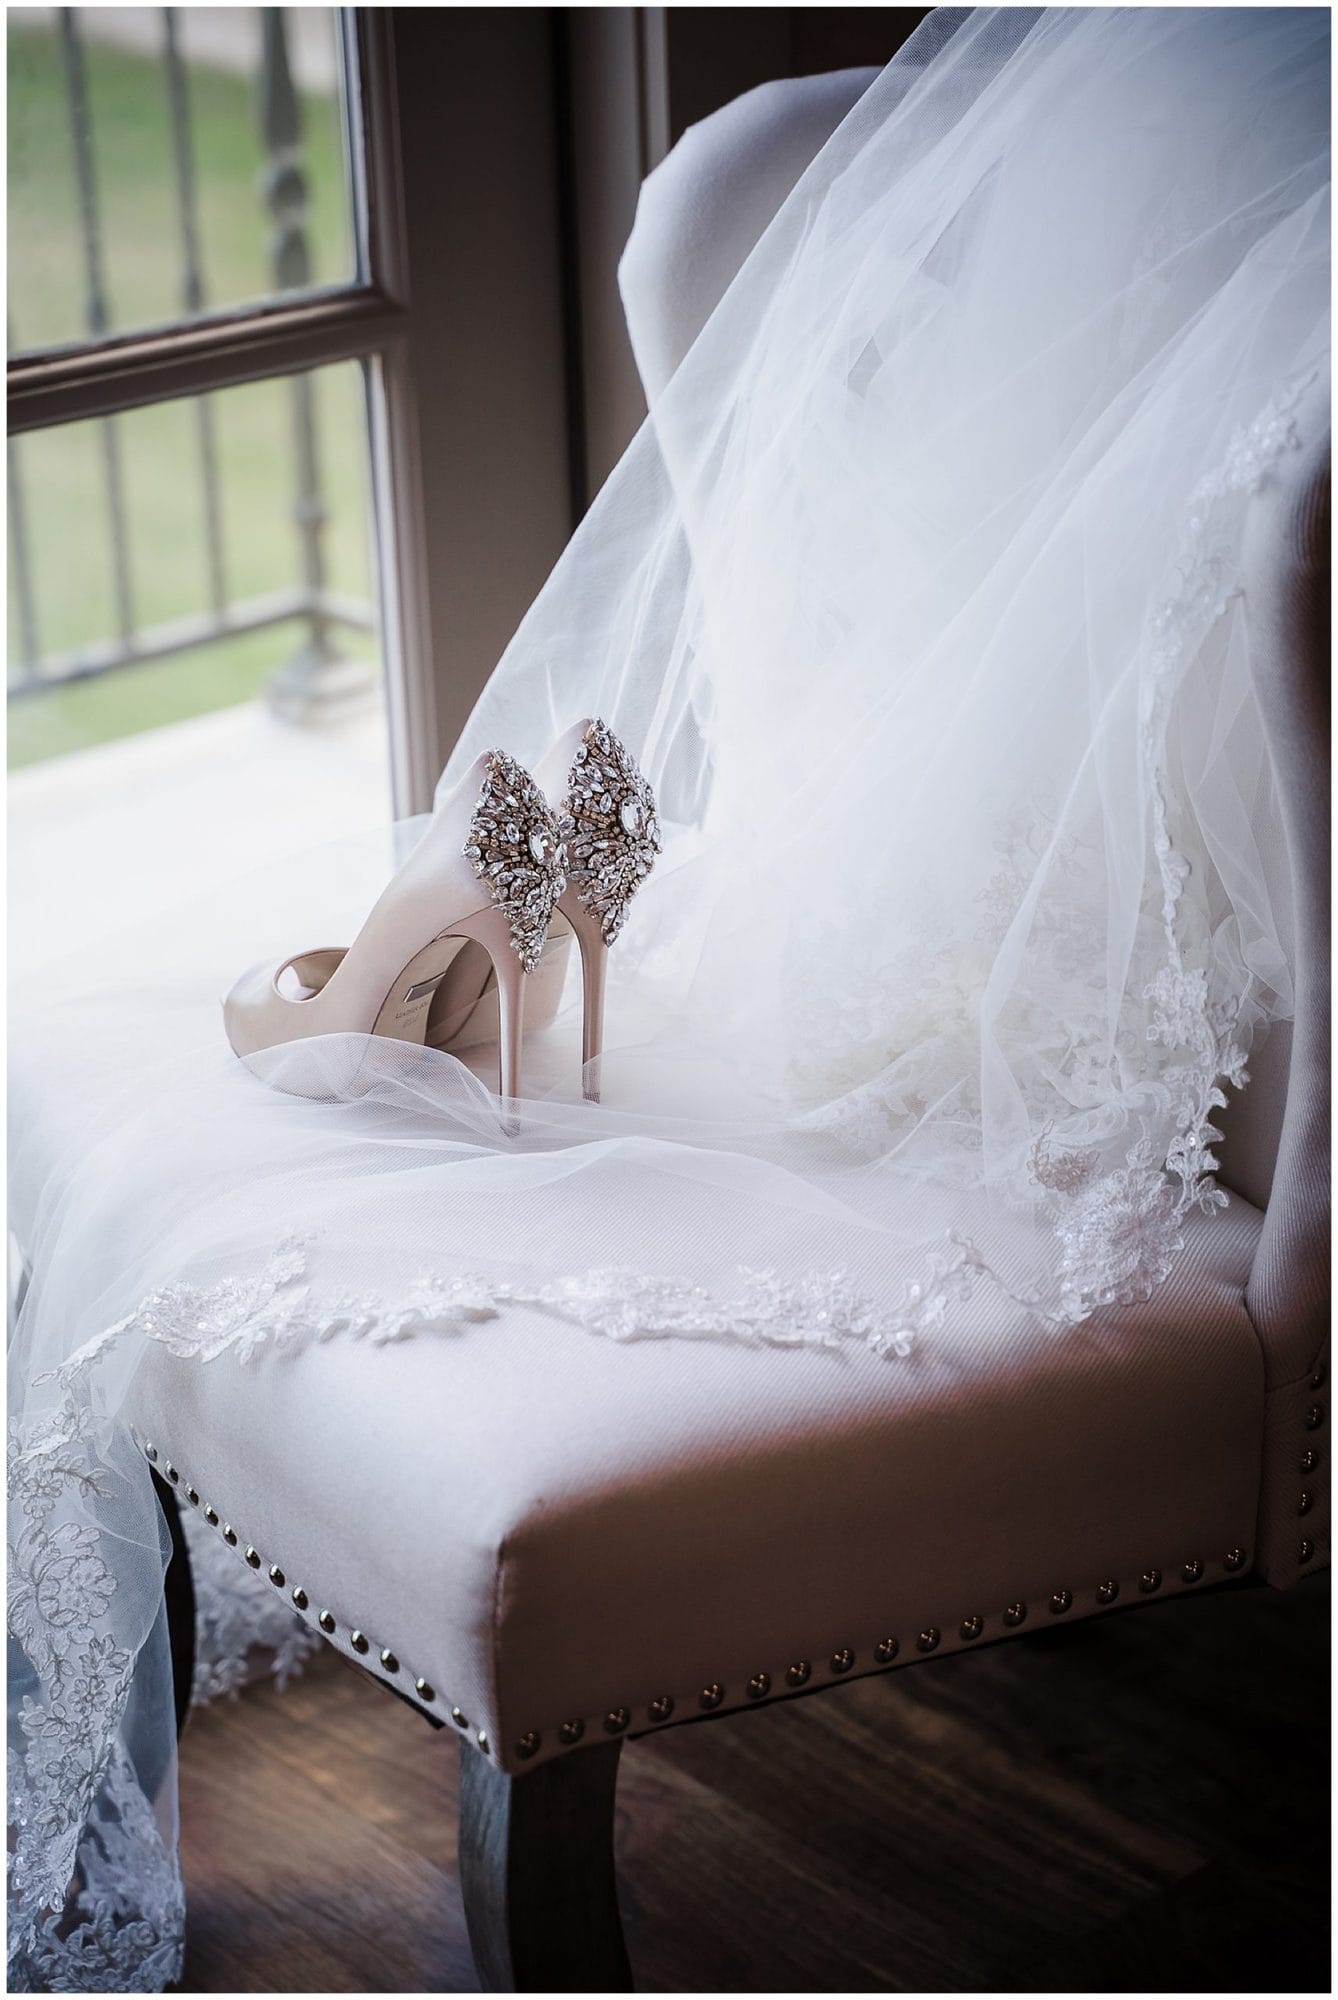 The Sadie Jane Wedding Venue bride's jeweled shoes on chair